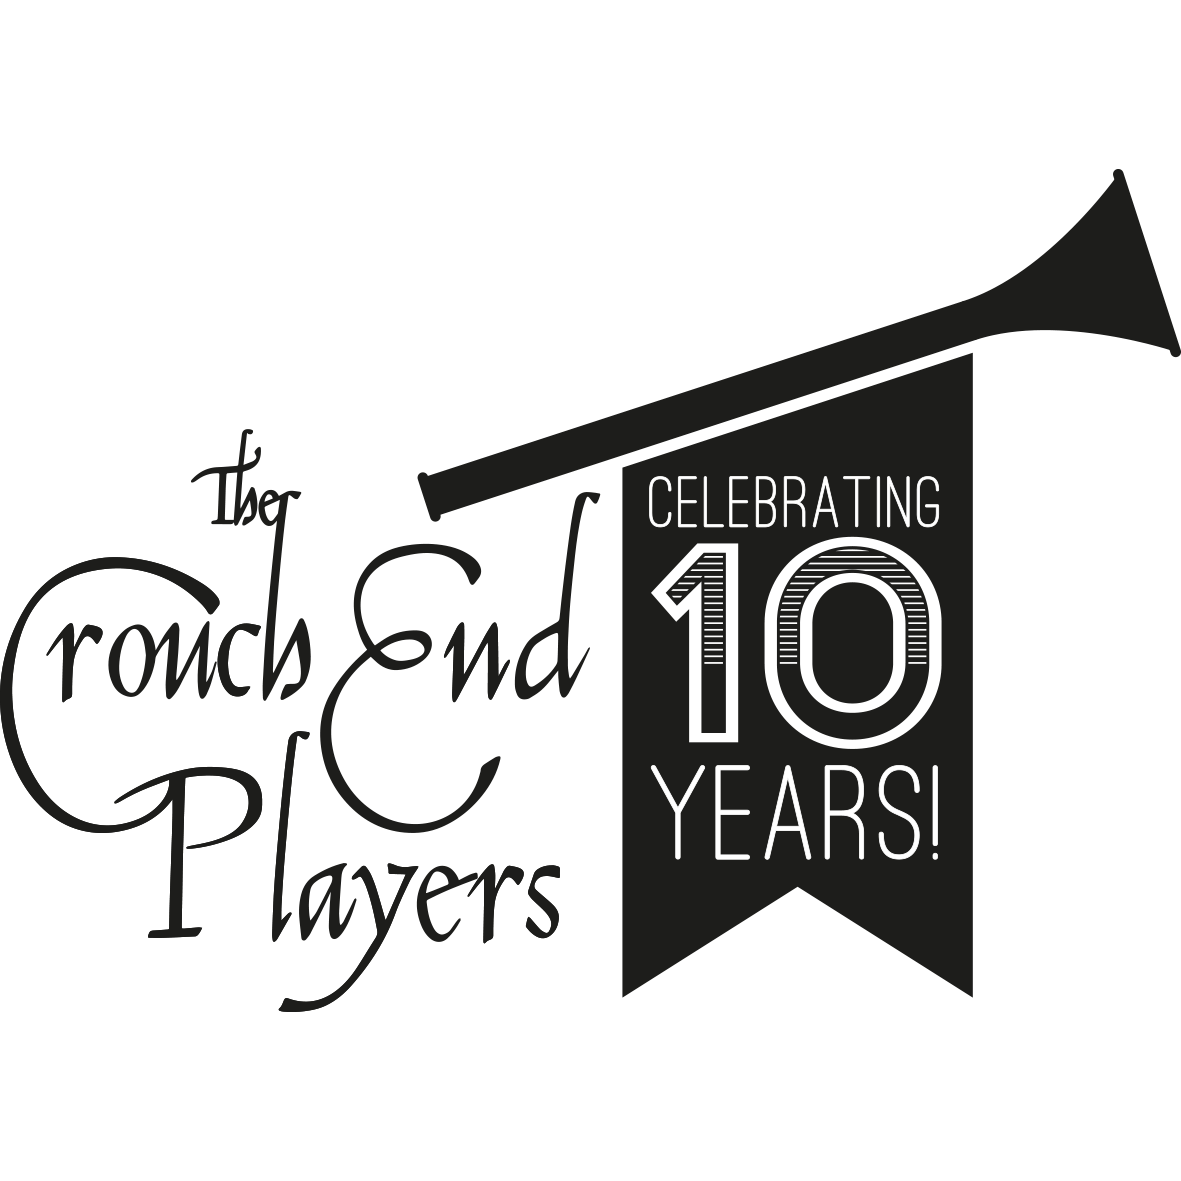 The Crouch End Players Contact